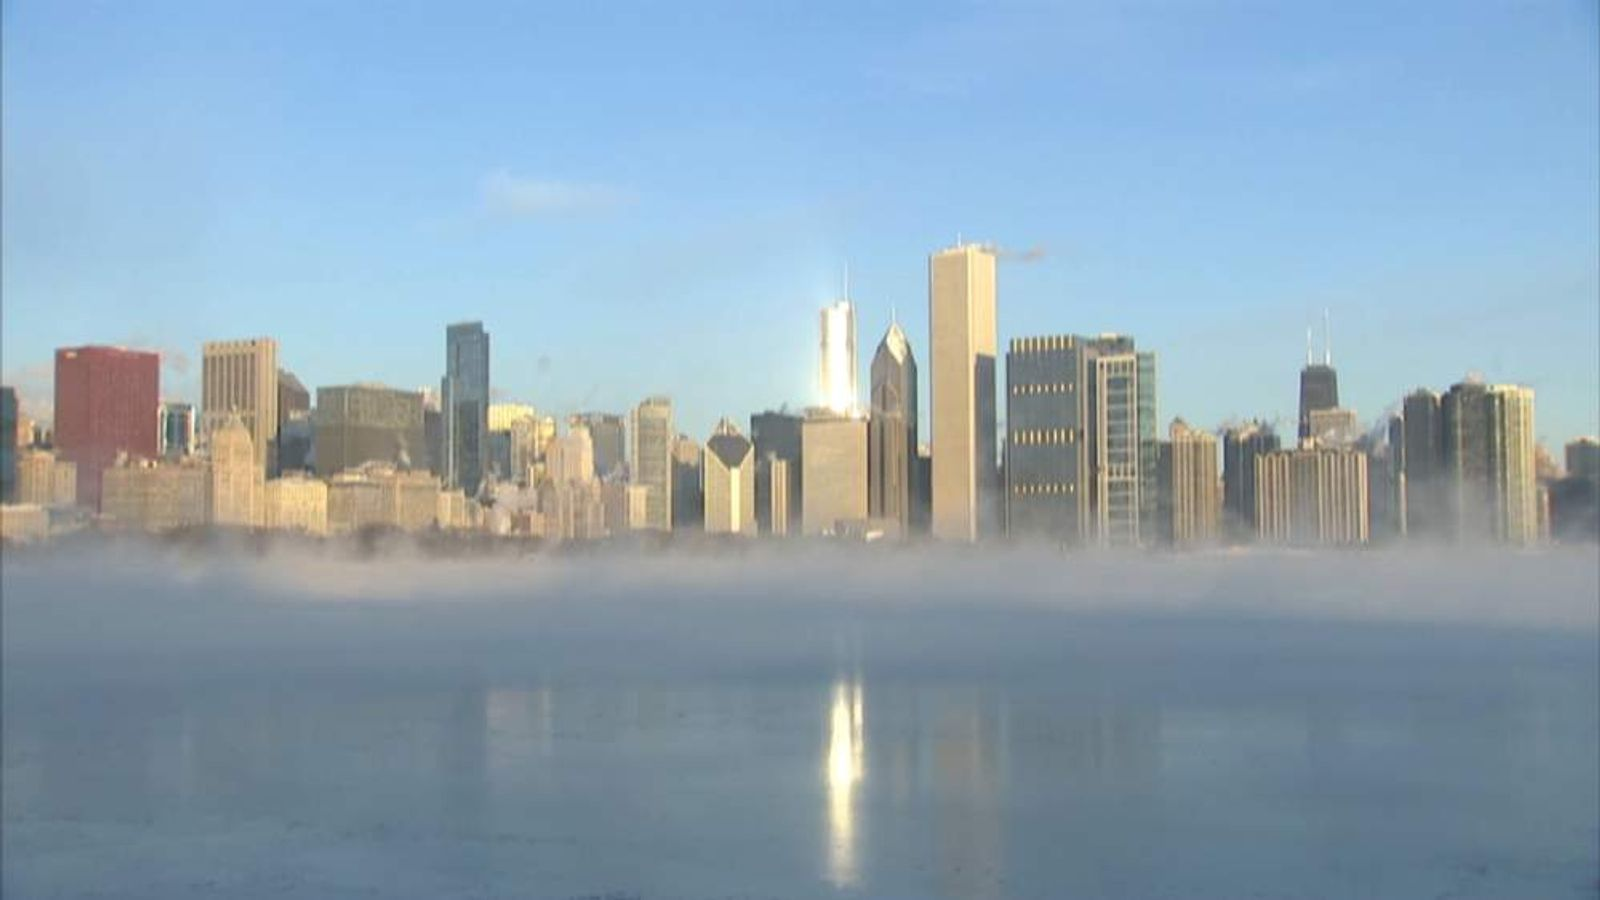 Vapours rise from the frozen surface of Lake Michigan